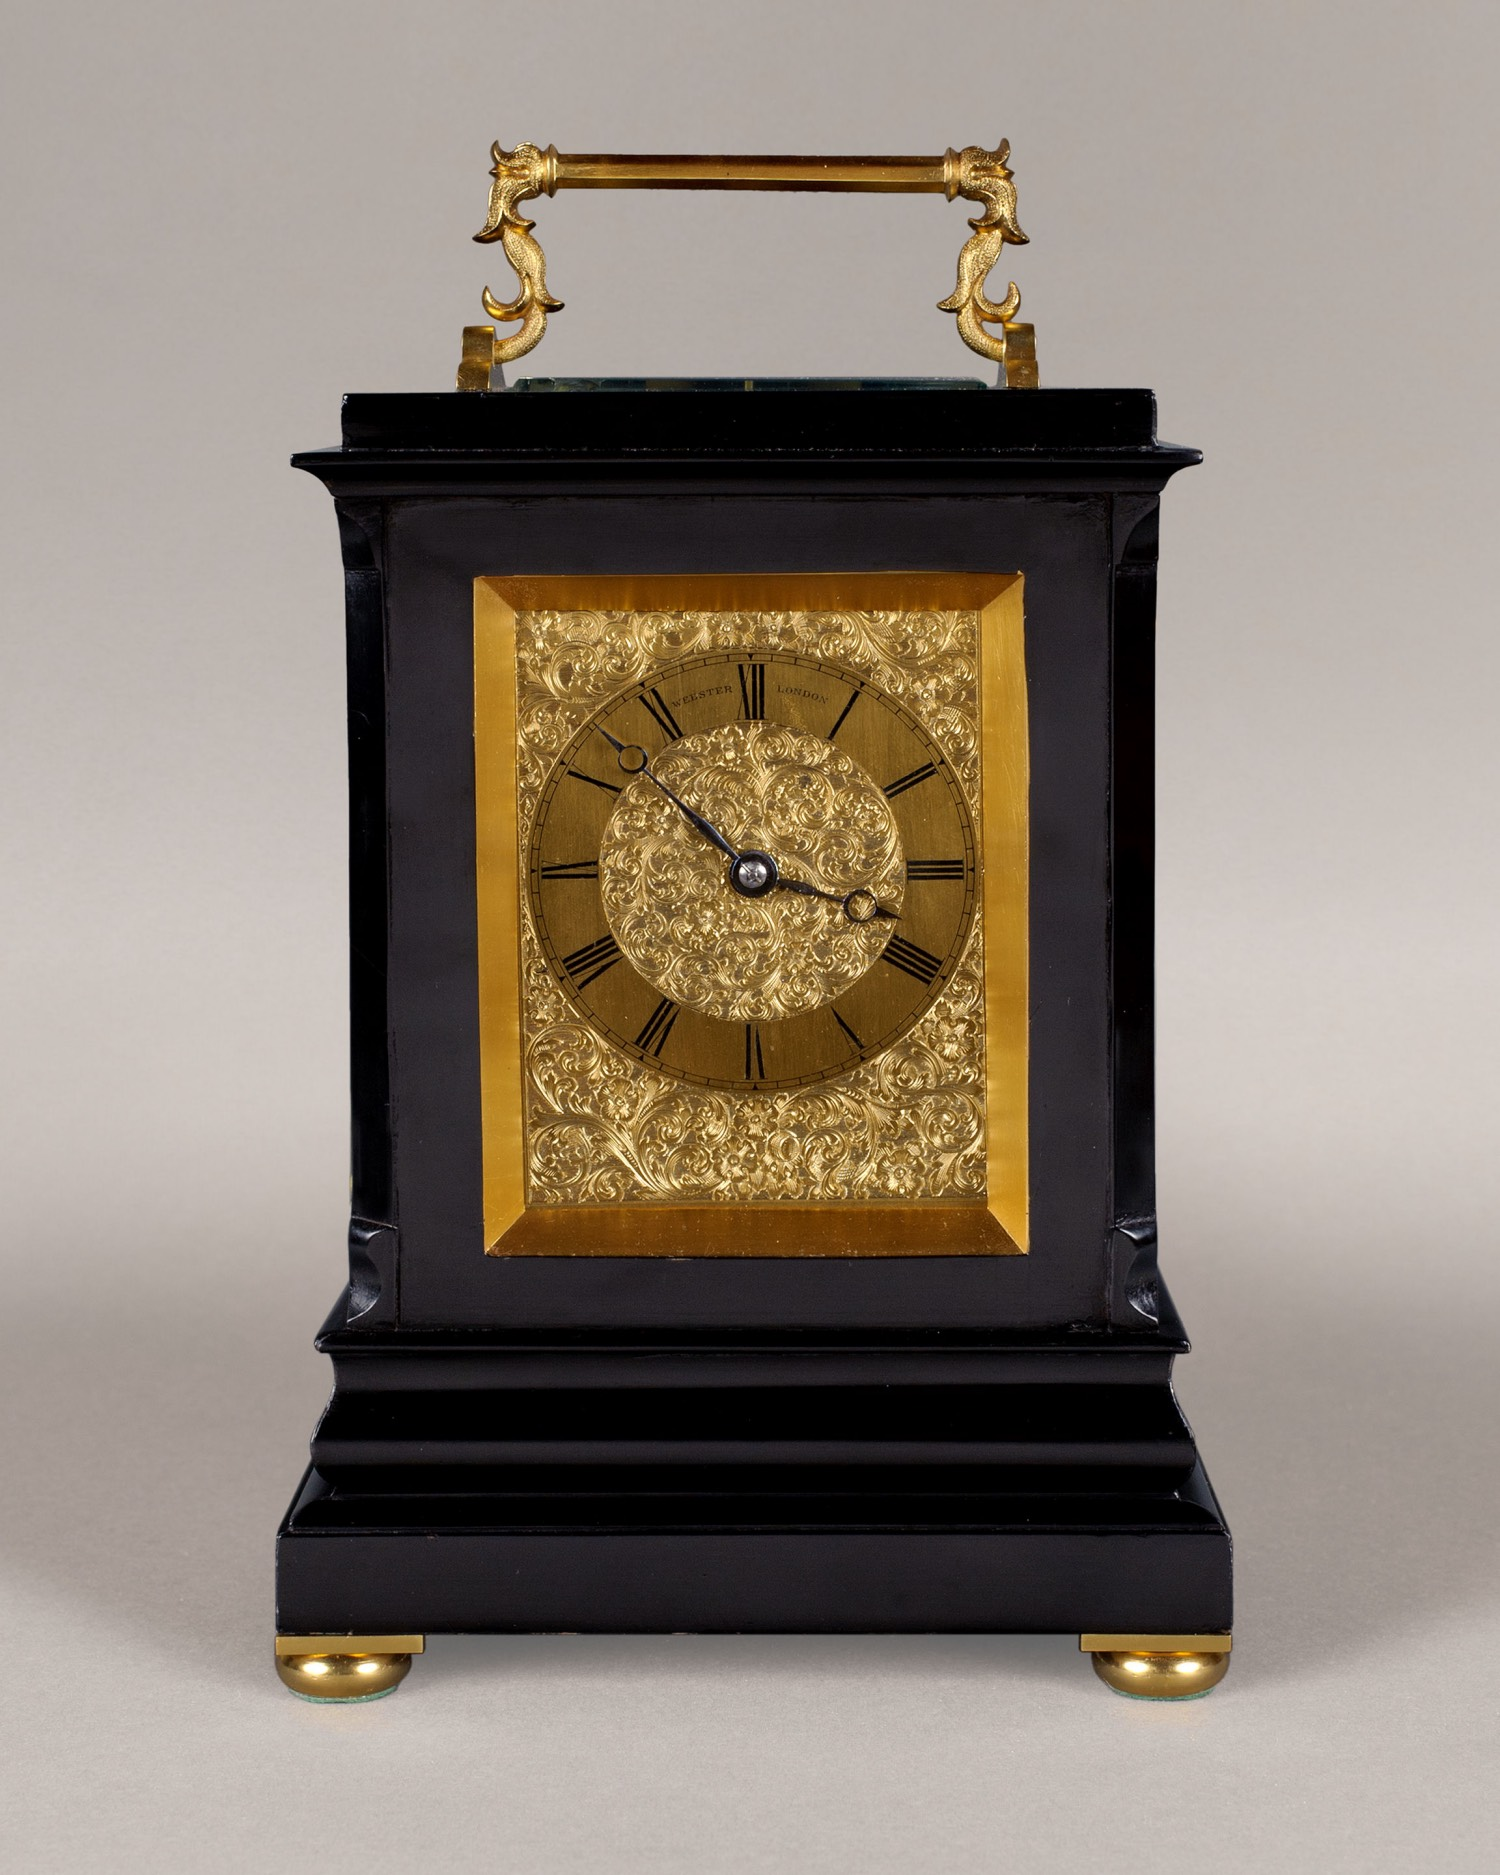 webster-cornhill-n-11405-a-mid-19th-century-quarter-striking-ebonised-mantel-clock.jpg_product